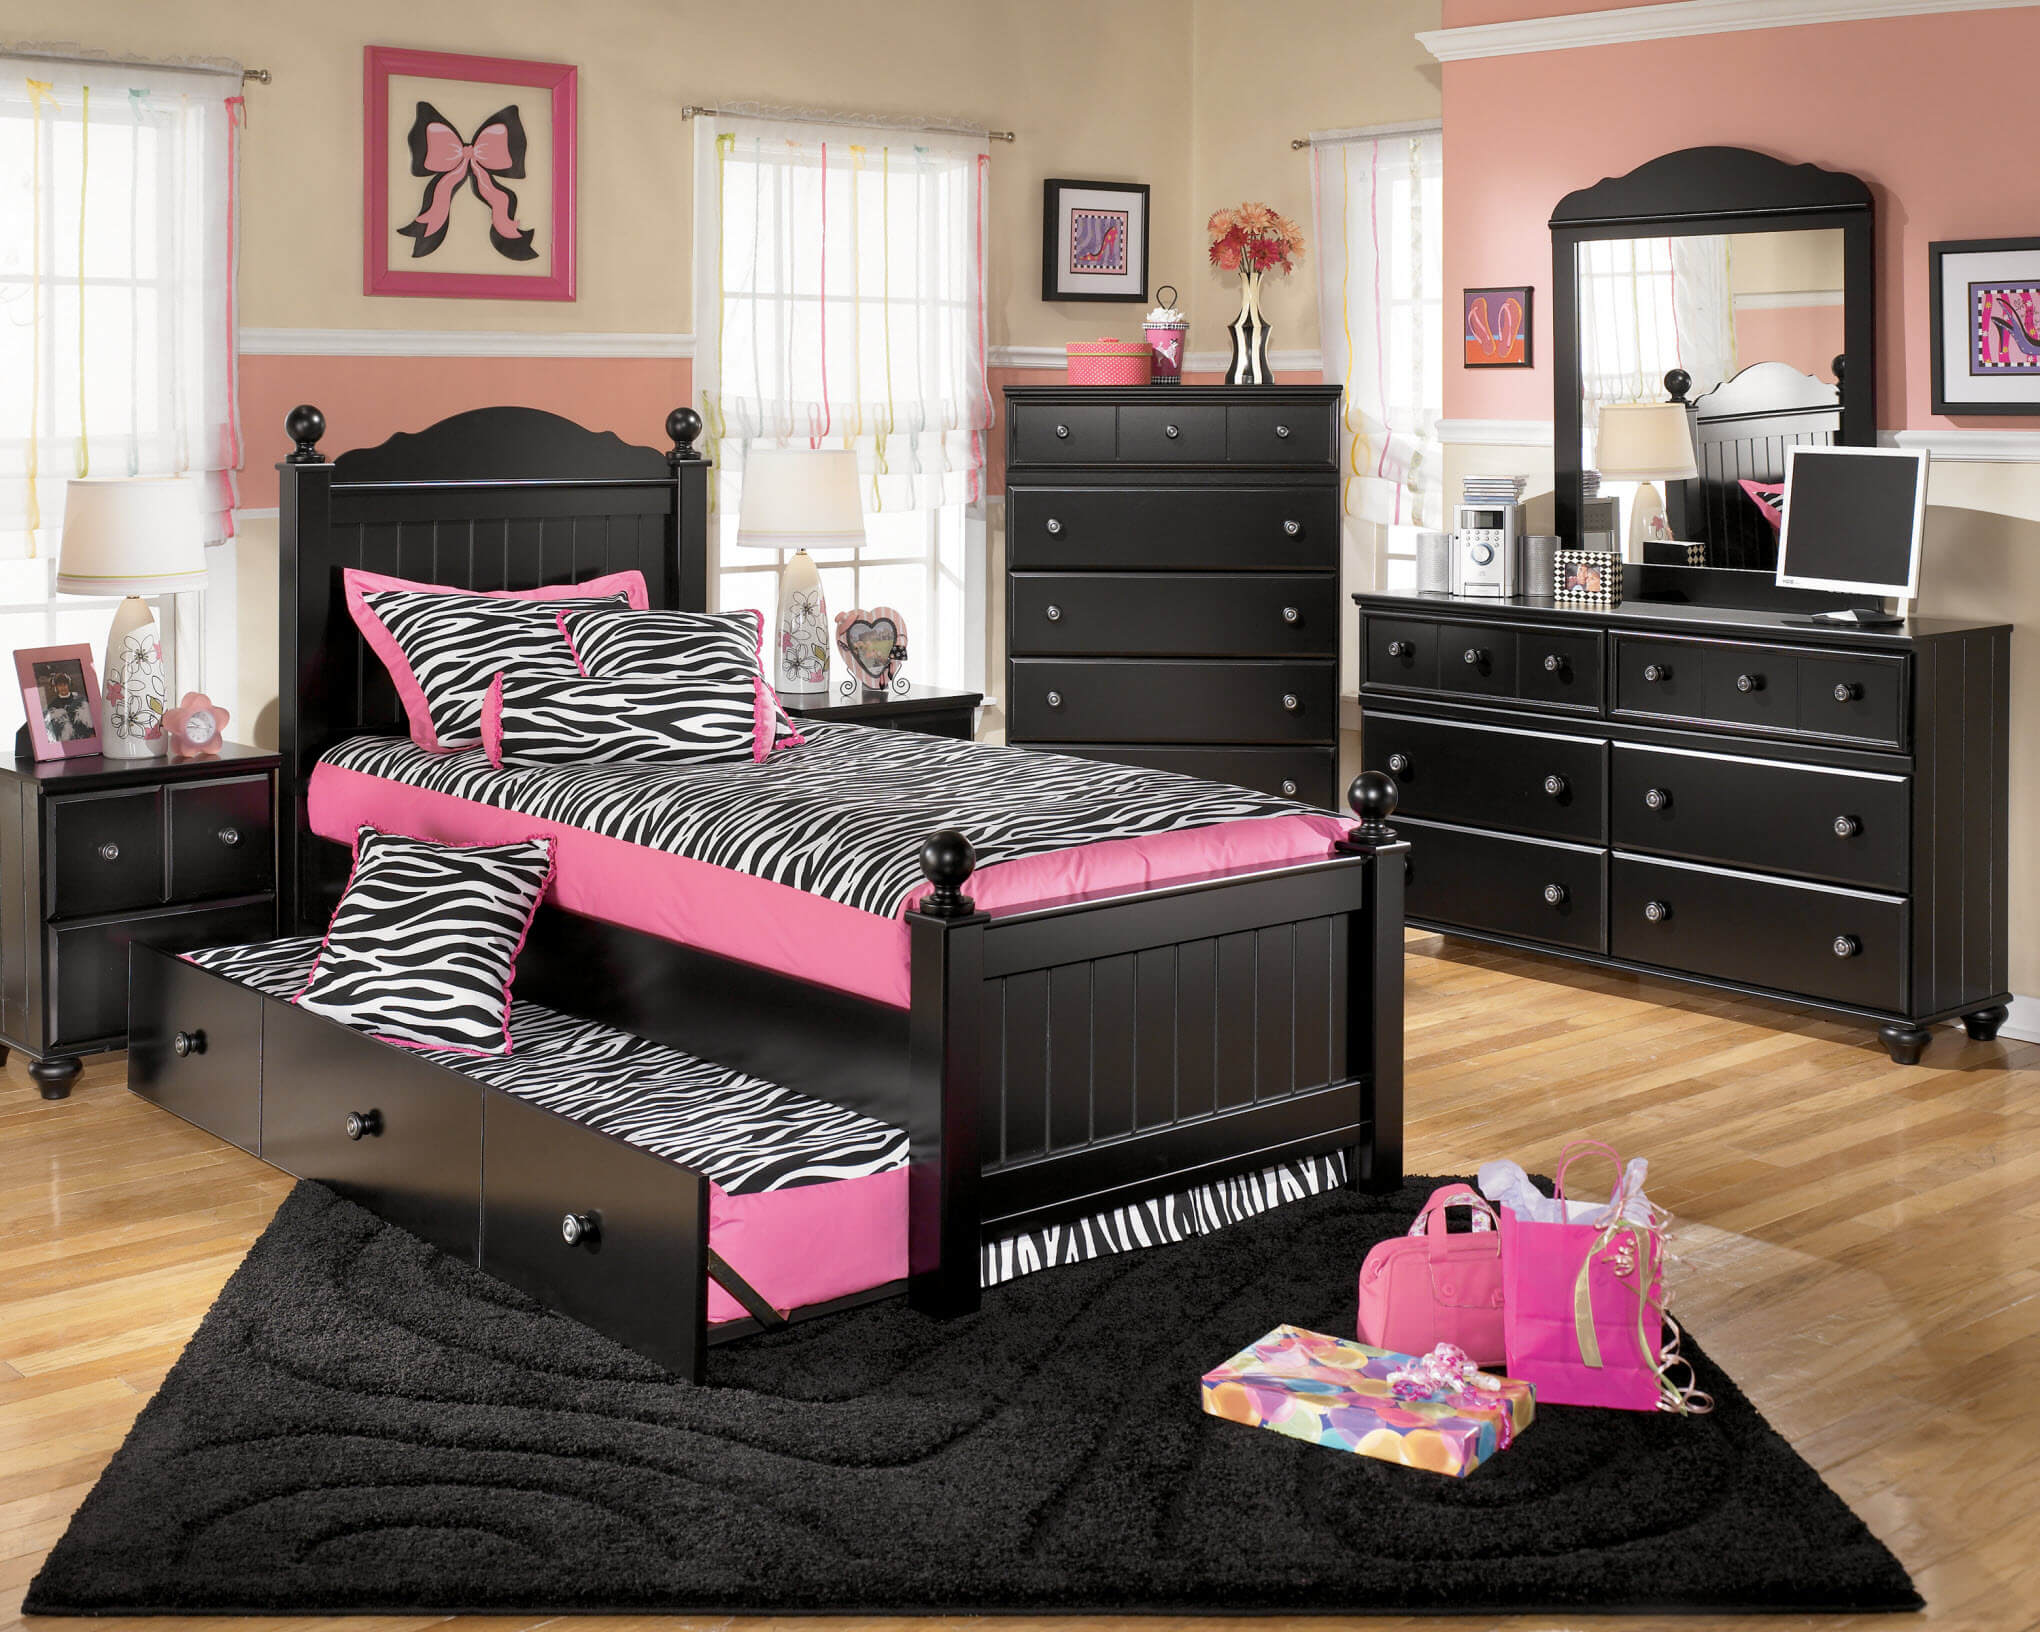 B150 Ashley Jaidyn Black Bedroom Set-DISCONTINUED